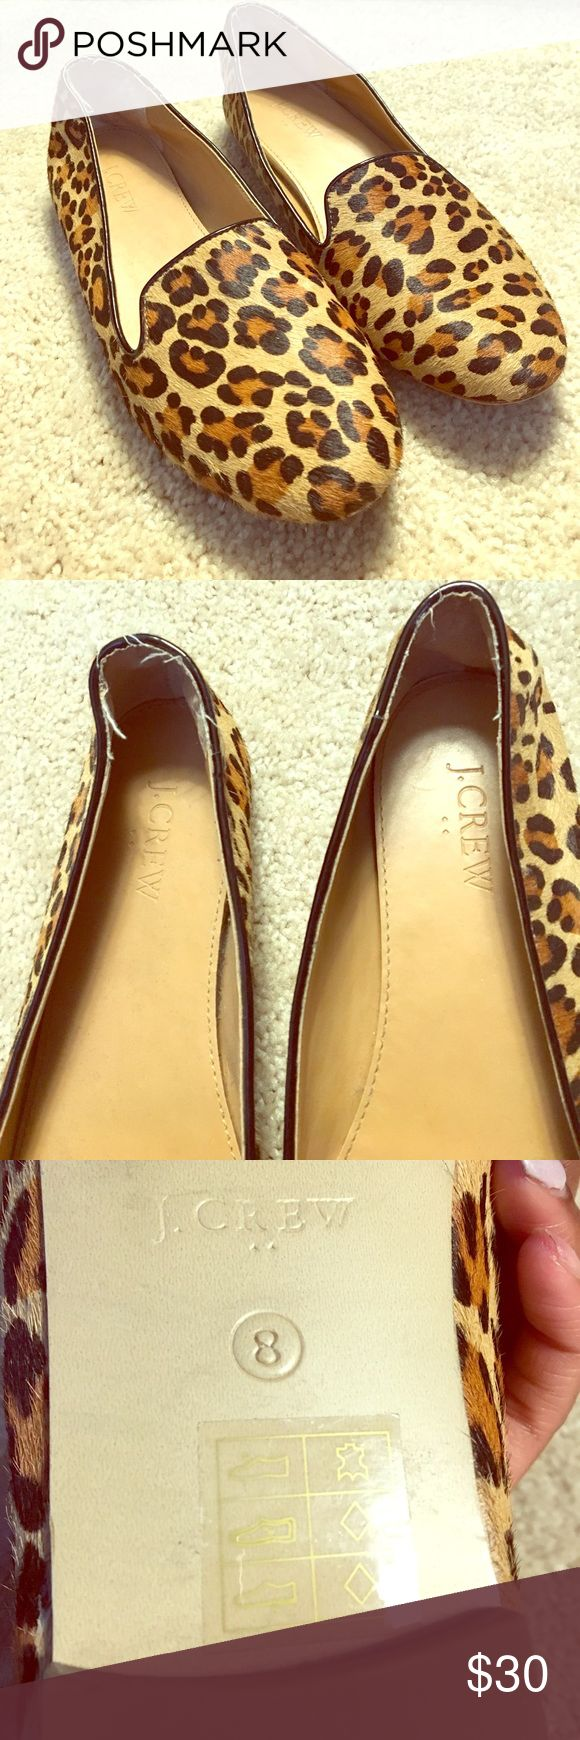 J.Crew Leopard Flats Calf hair, gently worn, Great pattern to throw on with any outfit and perfect for the office. Slight fraying around the heel, but other than that in great condition! J. Crew Shoes Flats & Loafers